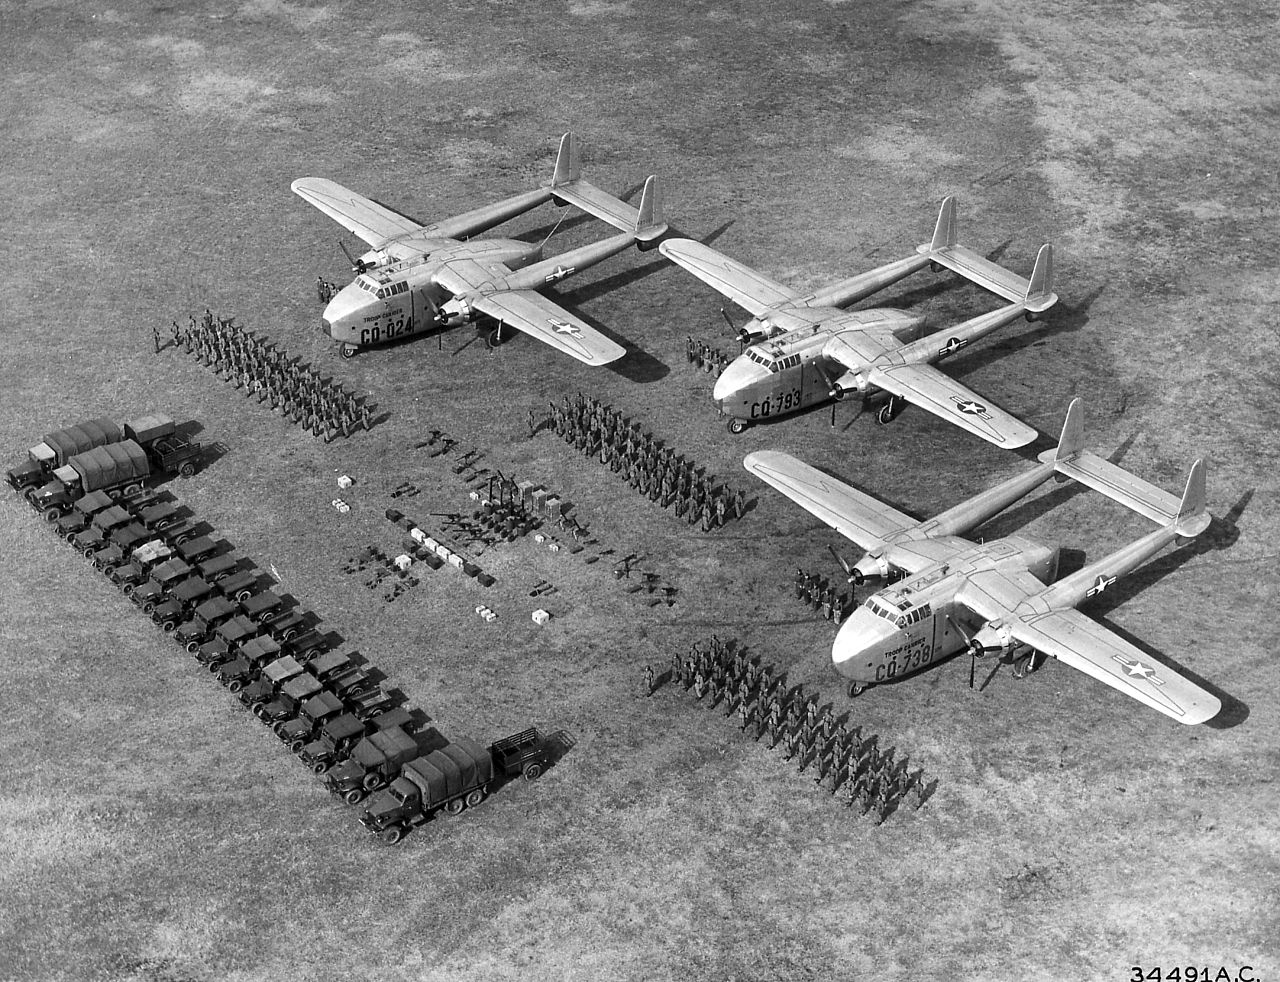 Three C-82s and various troops and cargo in 1948